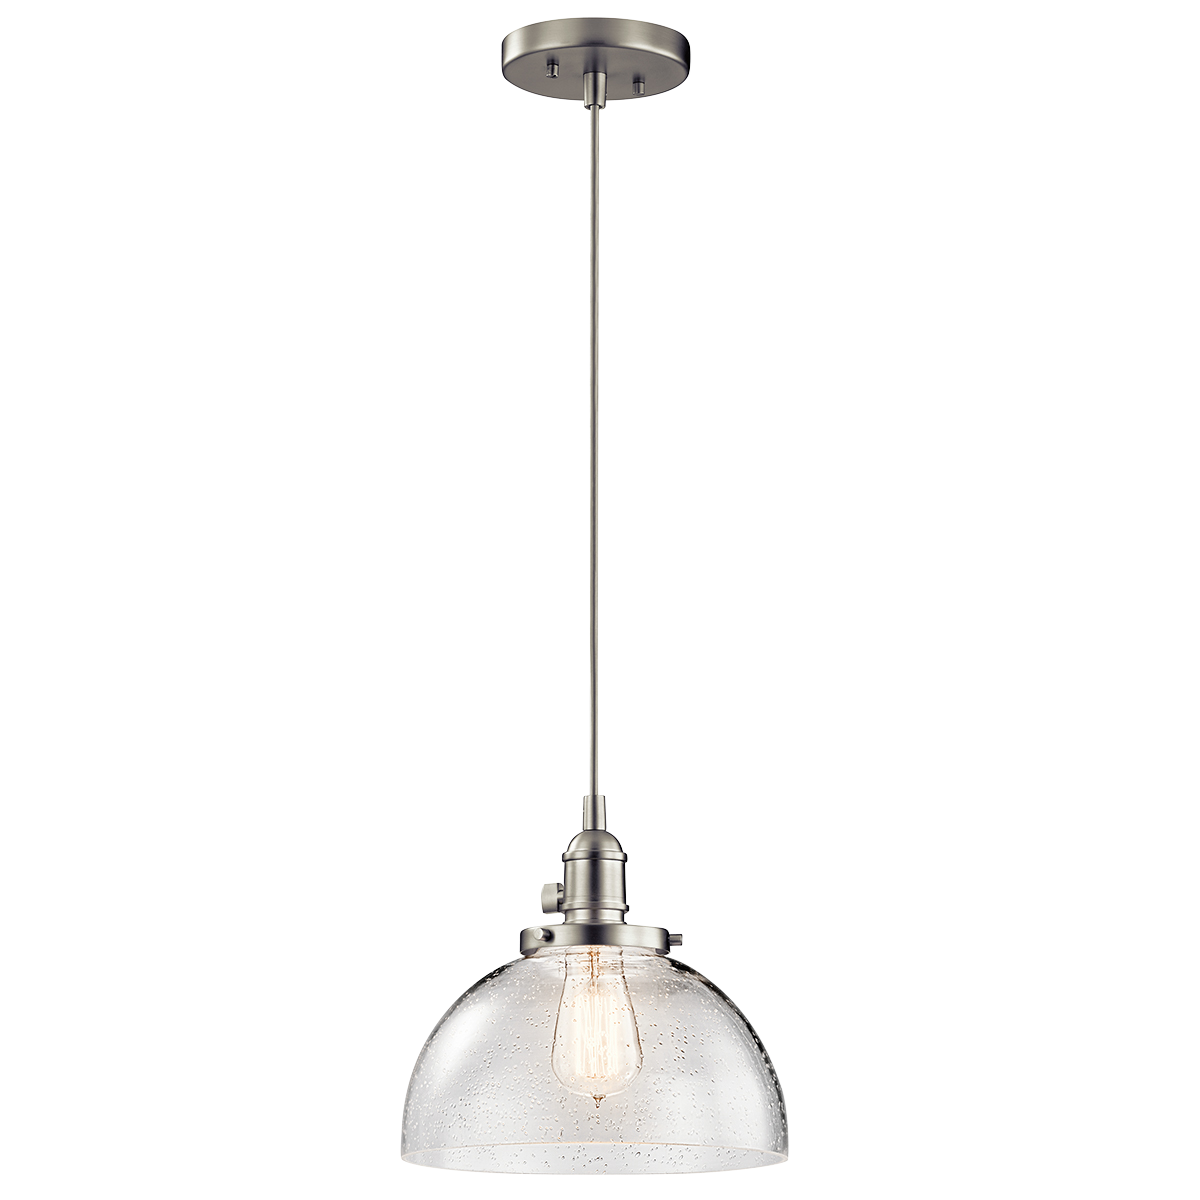 1 light avery mini pendant brushed nickel kitchen island